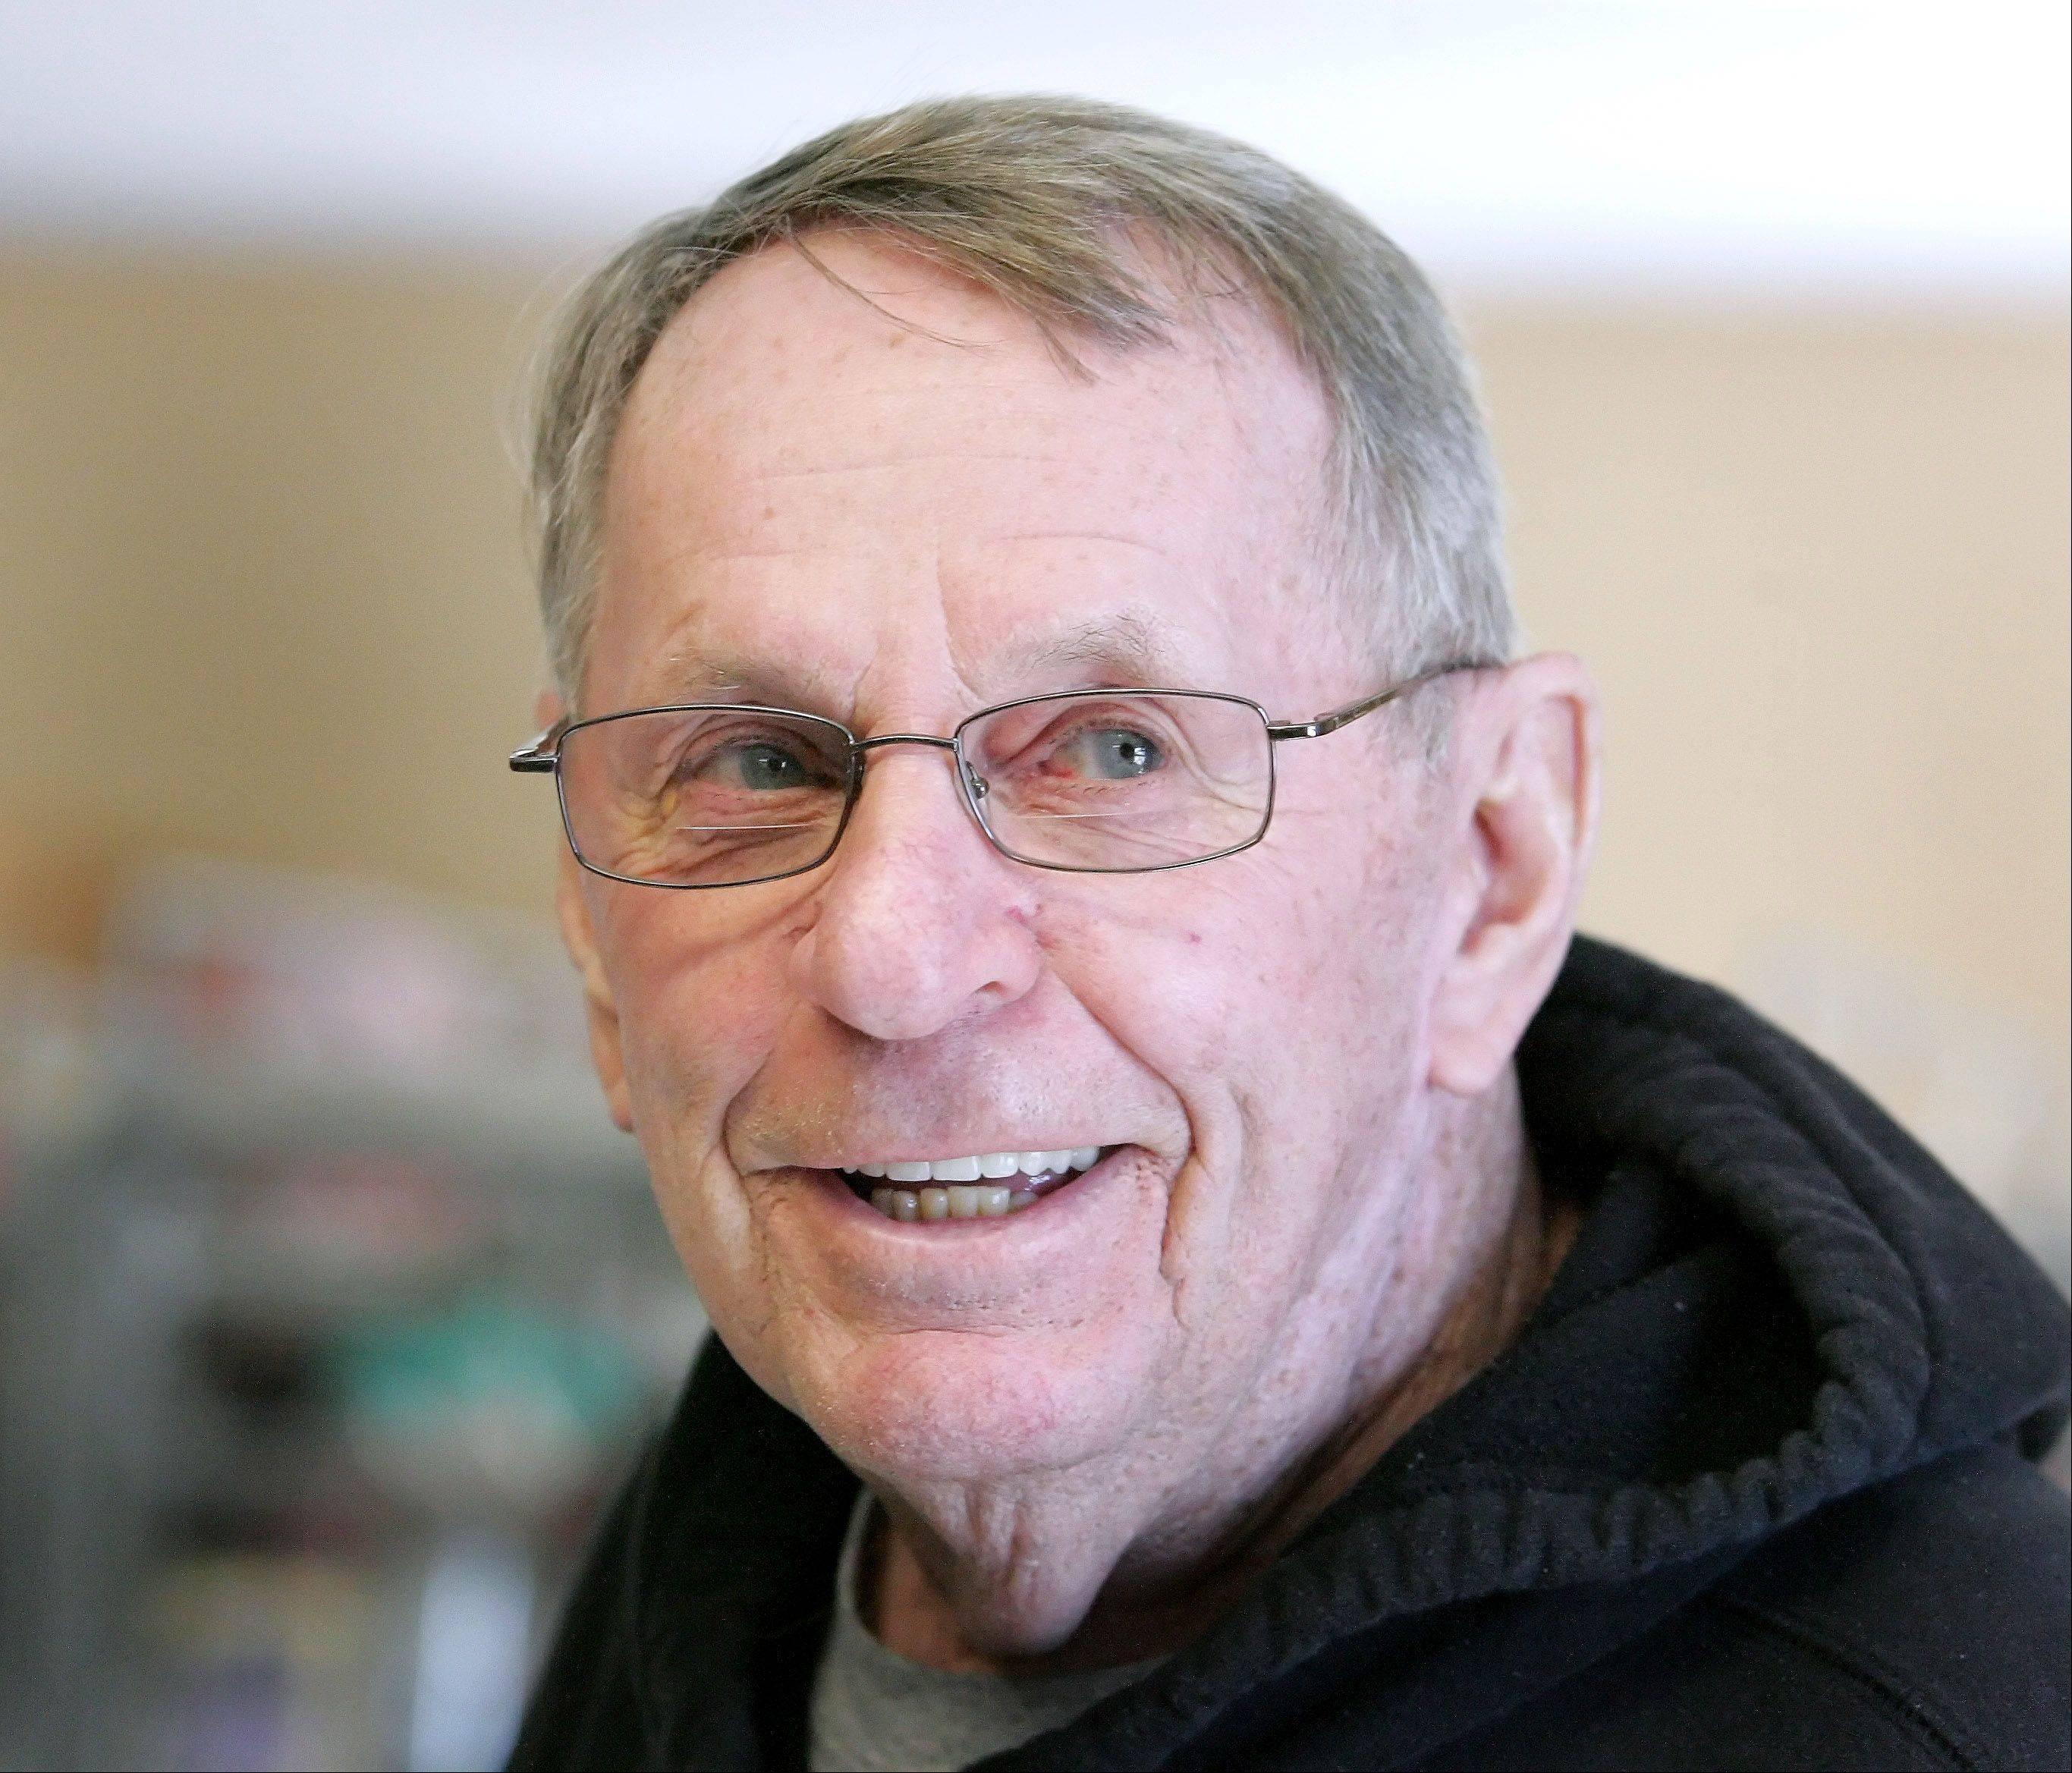 Don McGowan has been volunteering for six years at the People's Resource Center in Wheaton.